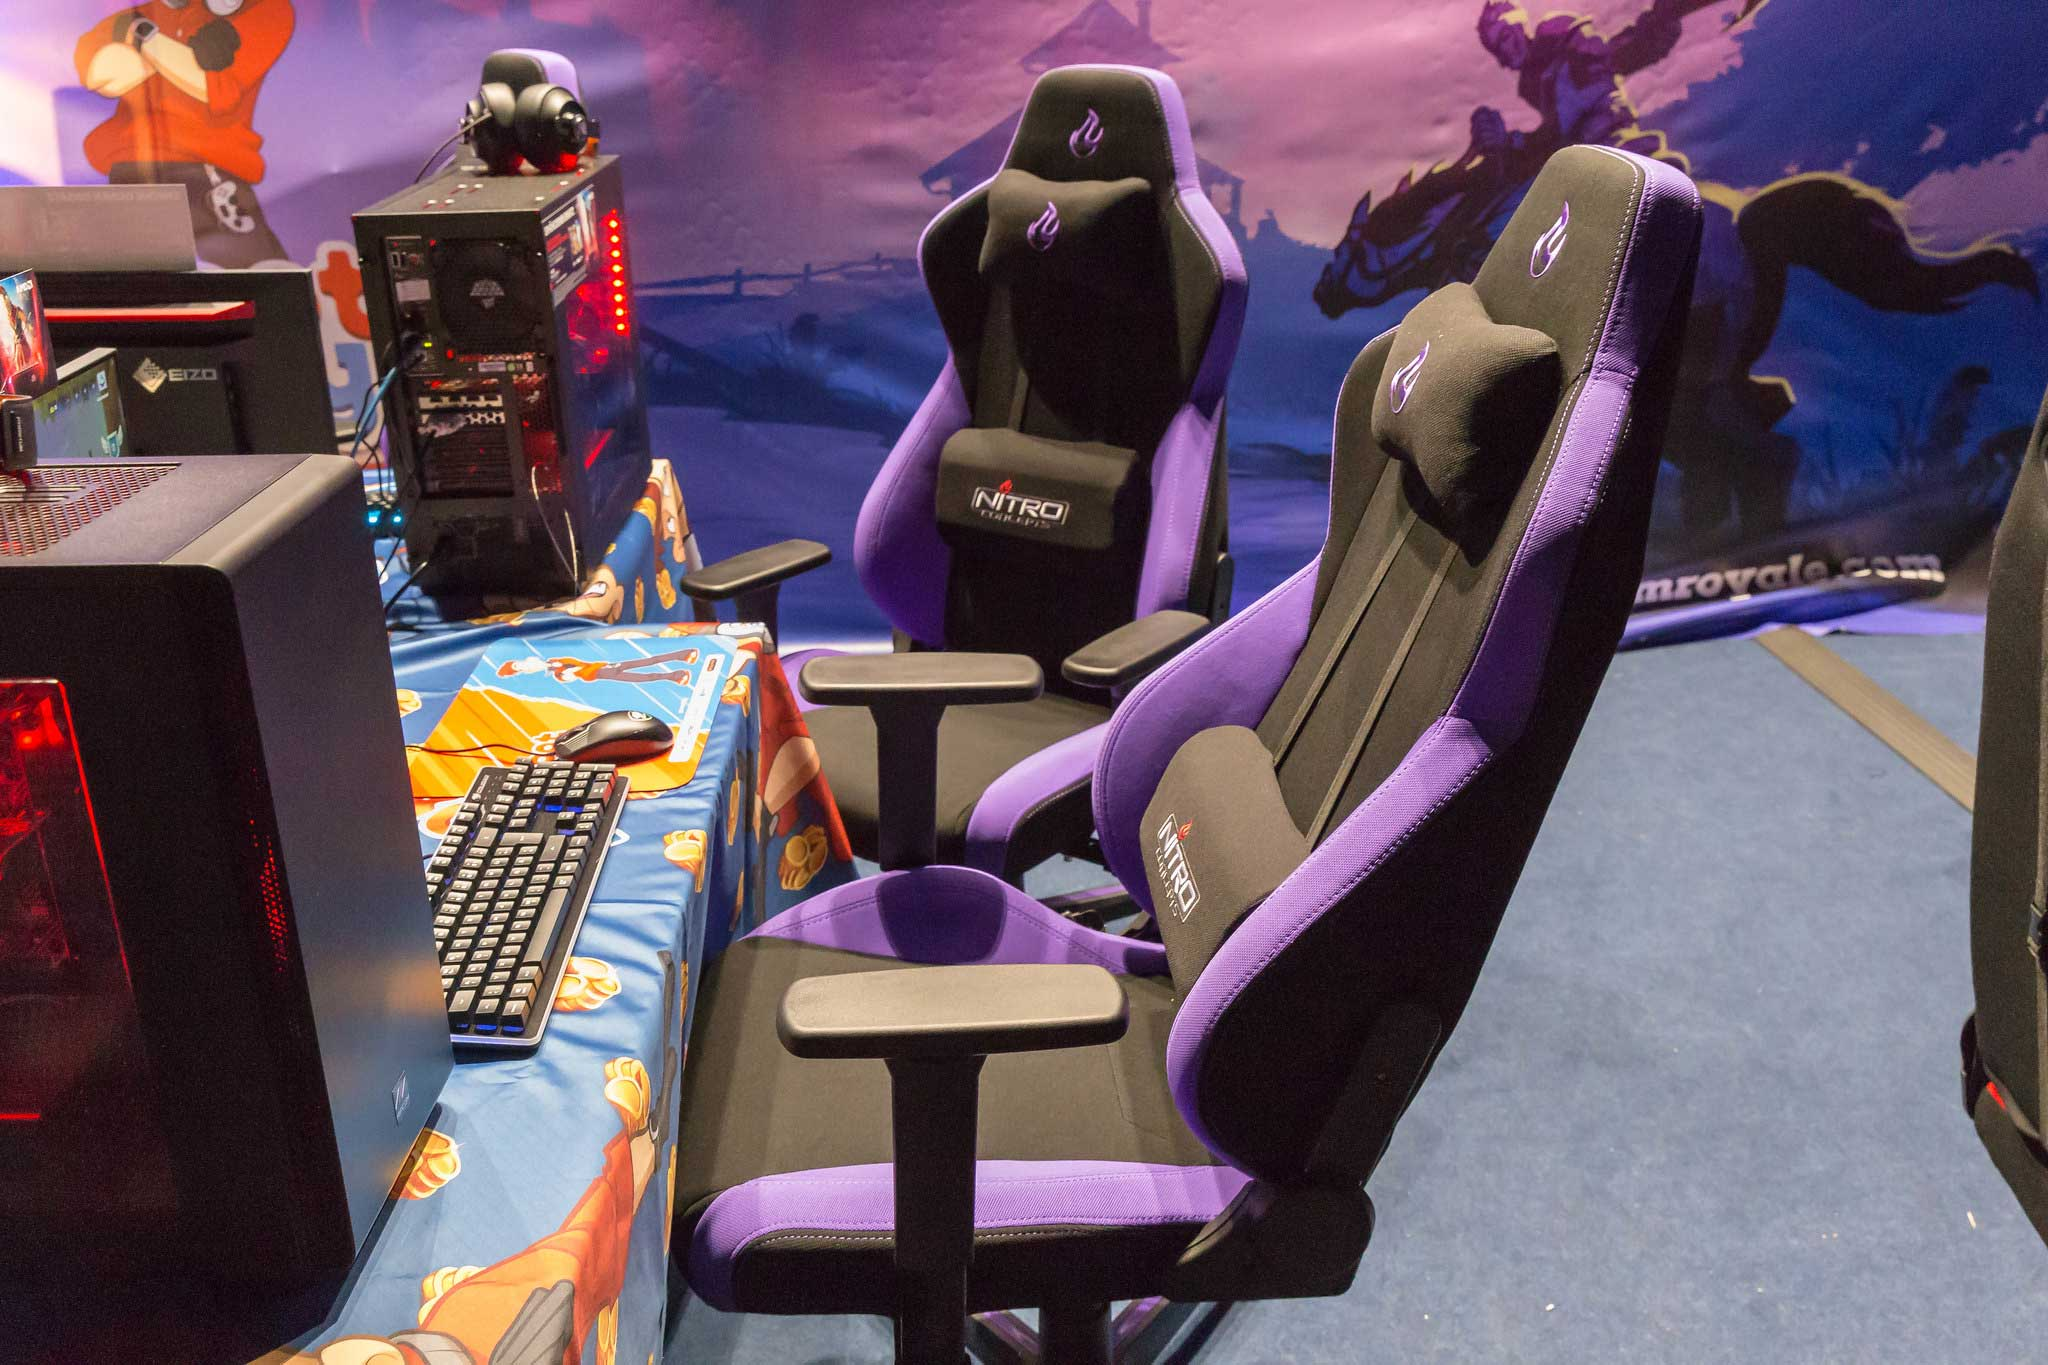 Cool Gaming Chairs Buyer's Guide | Roy Home Design